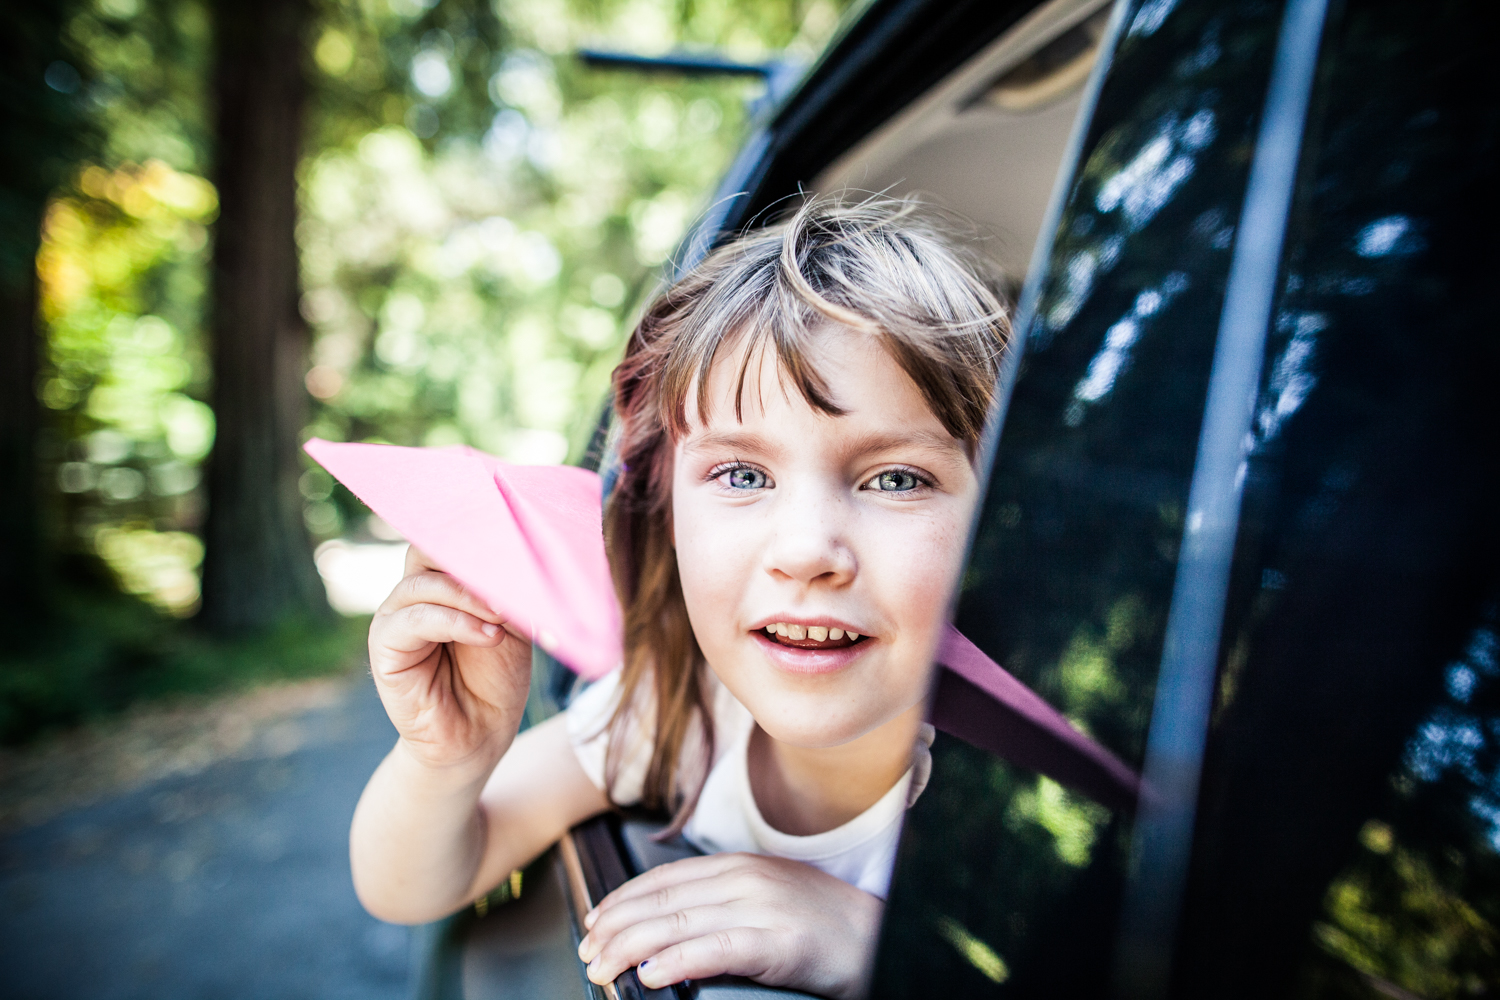 young Girl with a Paper Airplane Hanging out a Car Window